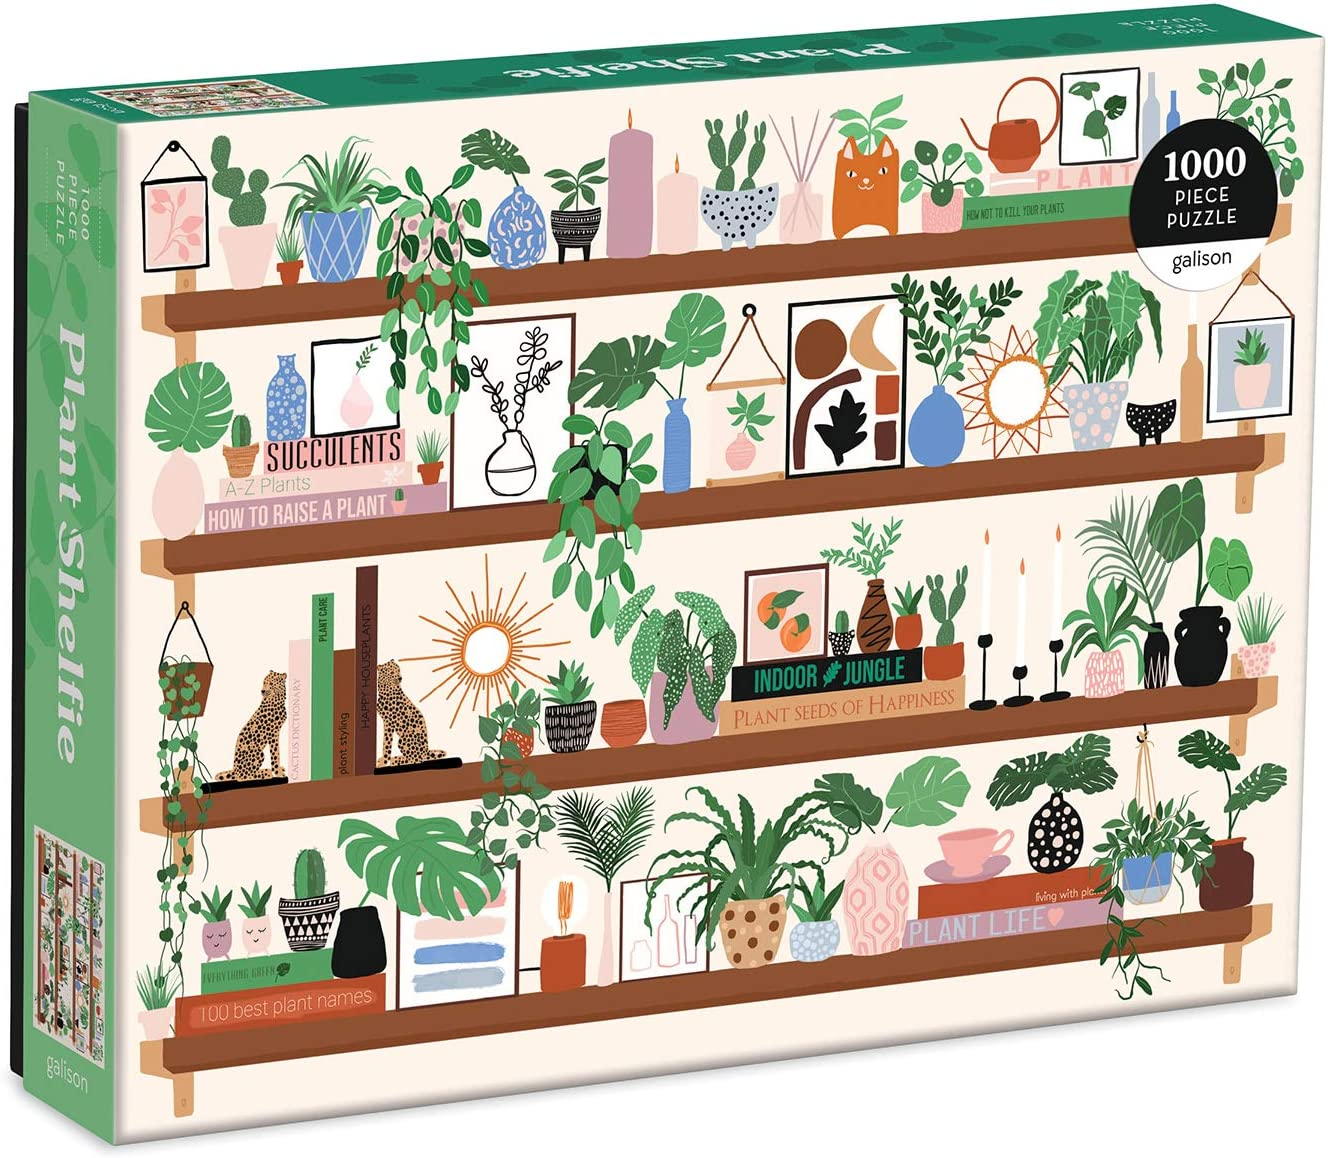 "Amazon.com: Galison Plant Shelfie Jigsaw Puzzle, 1,000 Pieces, 27"" x 20"" –  Plant Jigsaw Puzzle with Stunning Artwork by Francis Penwill, Thick, Sturdy  Pieces, Challenging Family Activity, Great Gift Idea: Toys & Games"